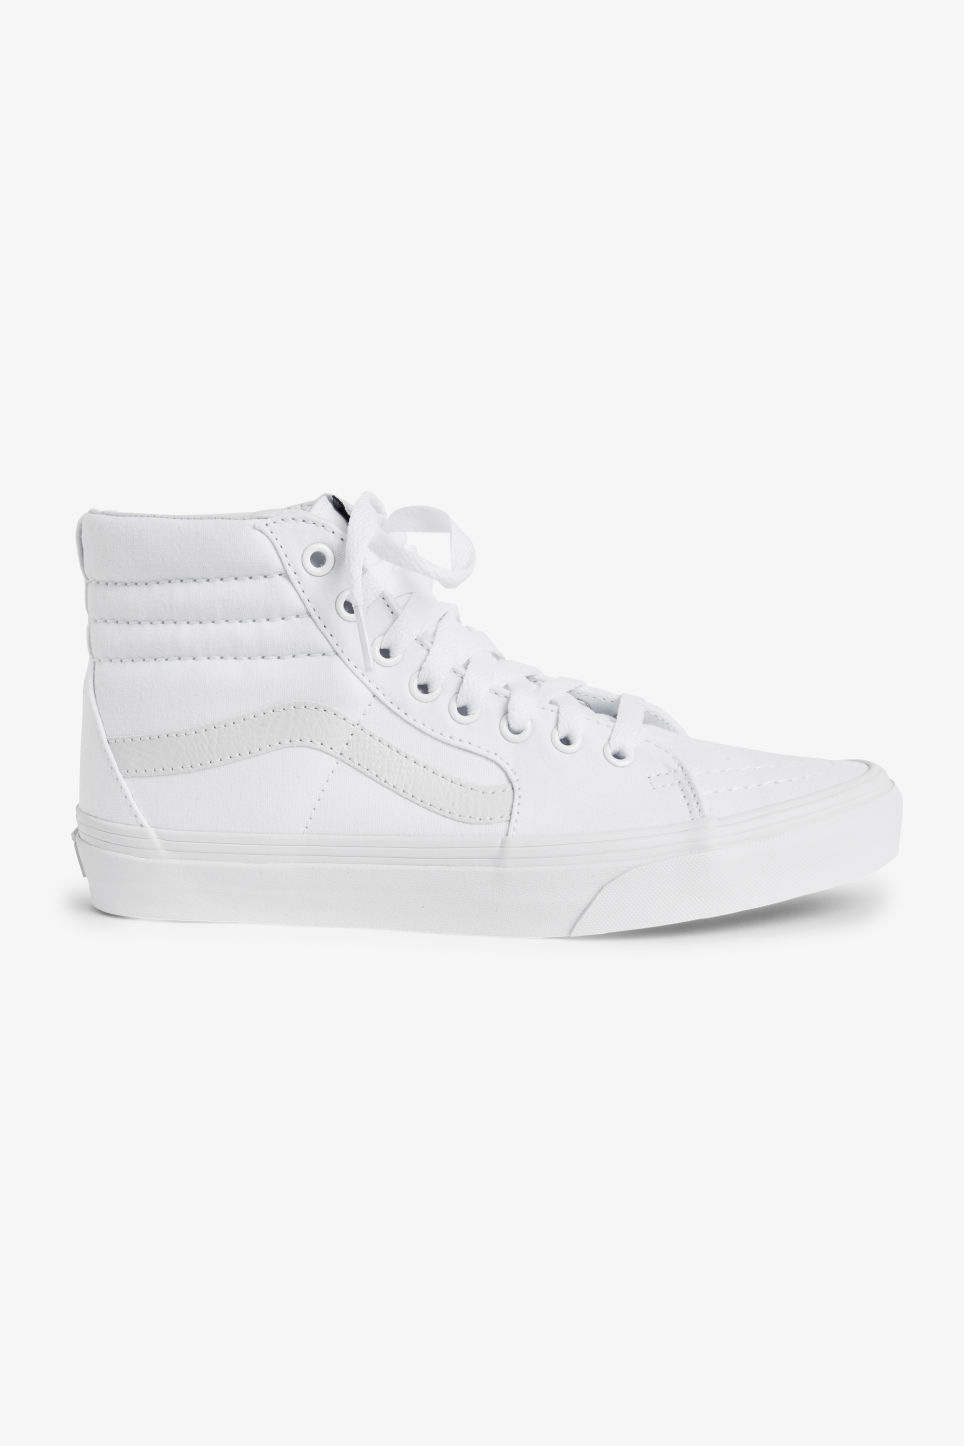 Detailed image of Monki vans sk8 hi in white